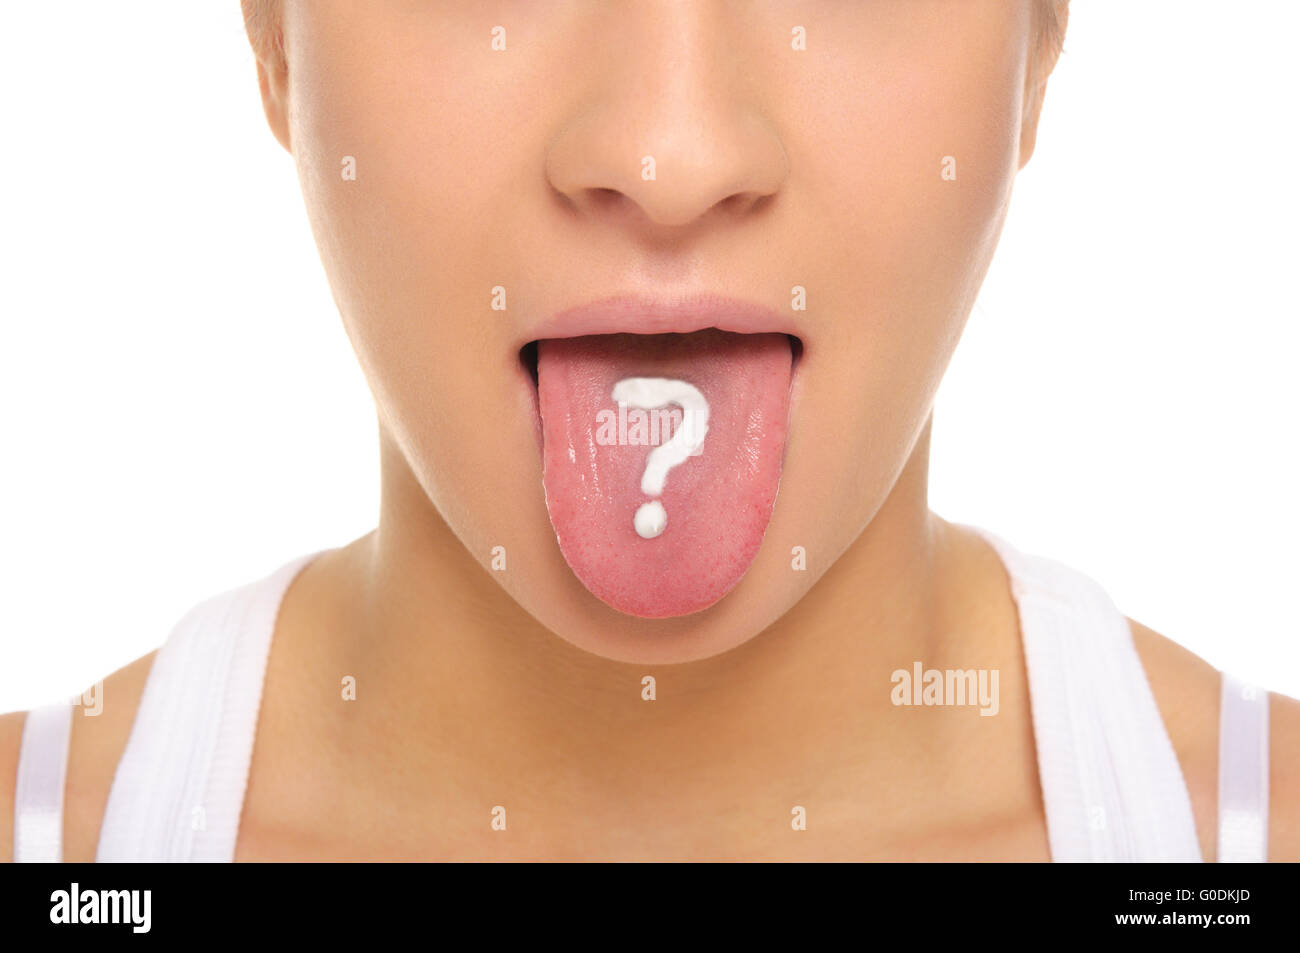 Woman puts out tongue with drawn question mark - Stock Image